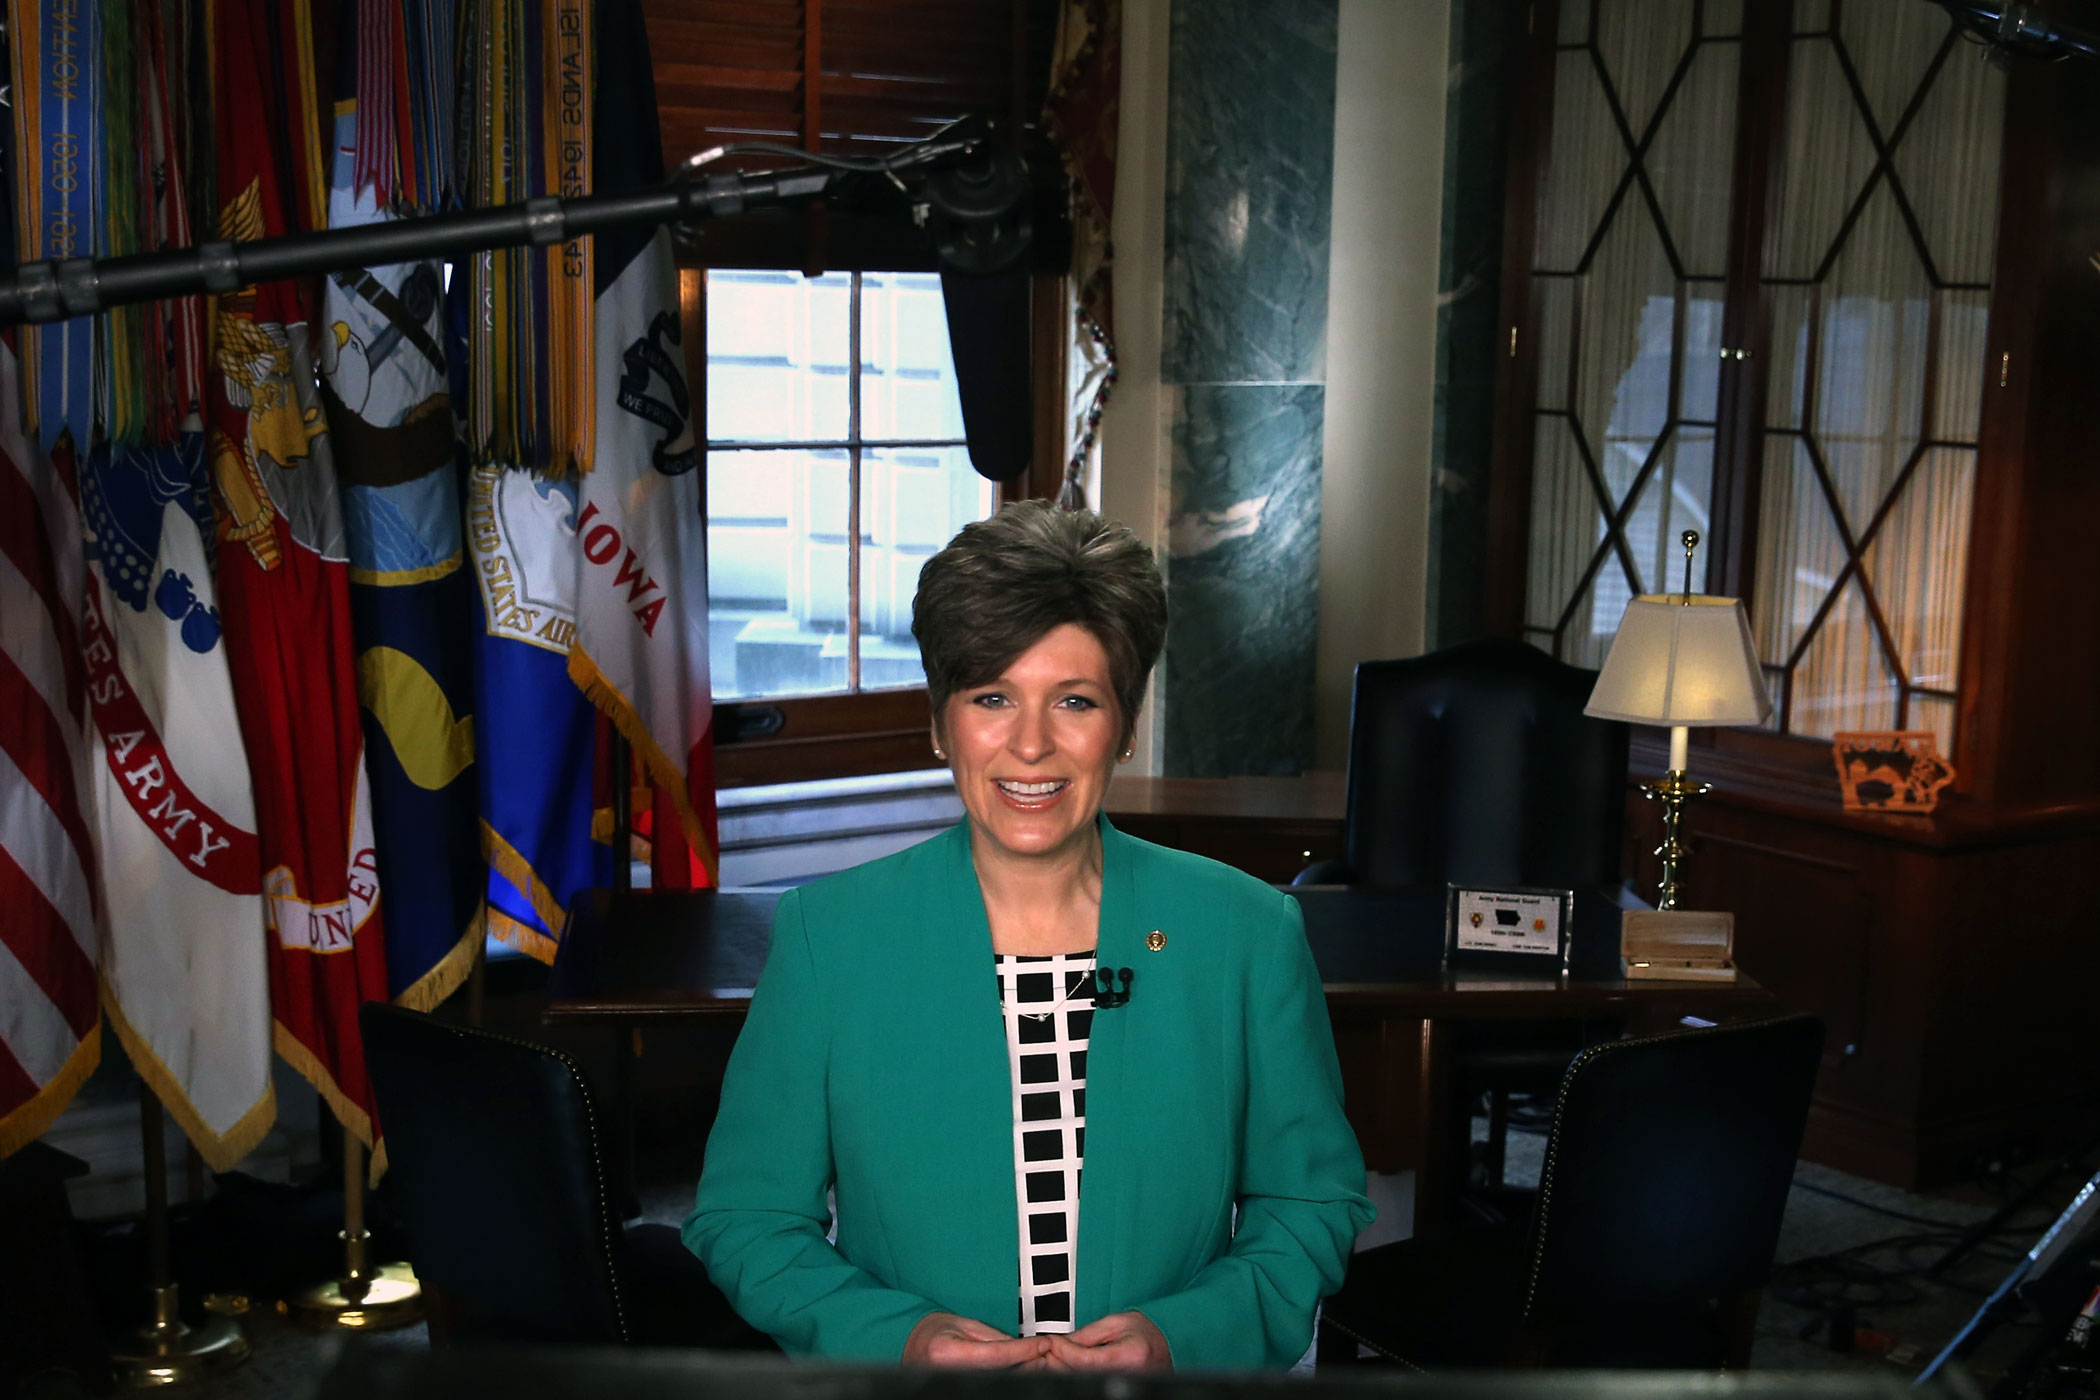 U.S. Sen. Joni Ernst prepares to deliver the Republican response to President Barack Obama's State of the Union address, on Capitol Hill on Jan. 20, 2015 in Washington.